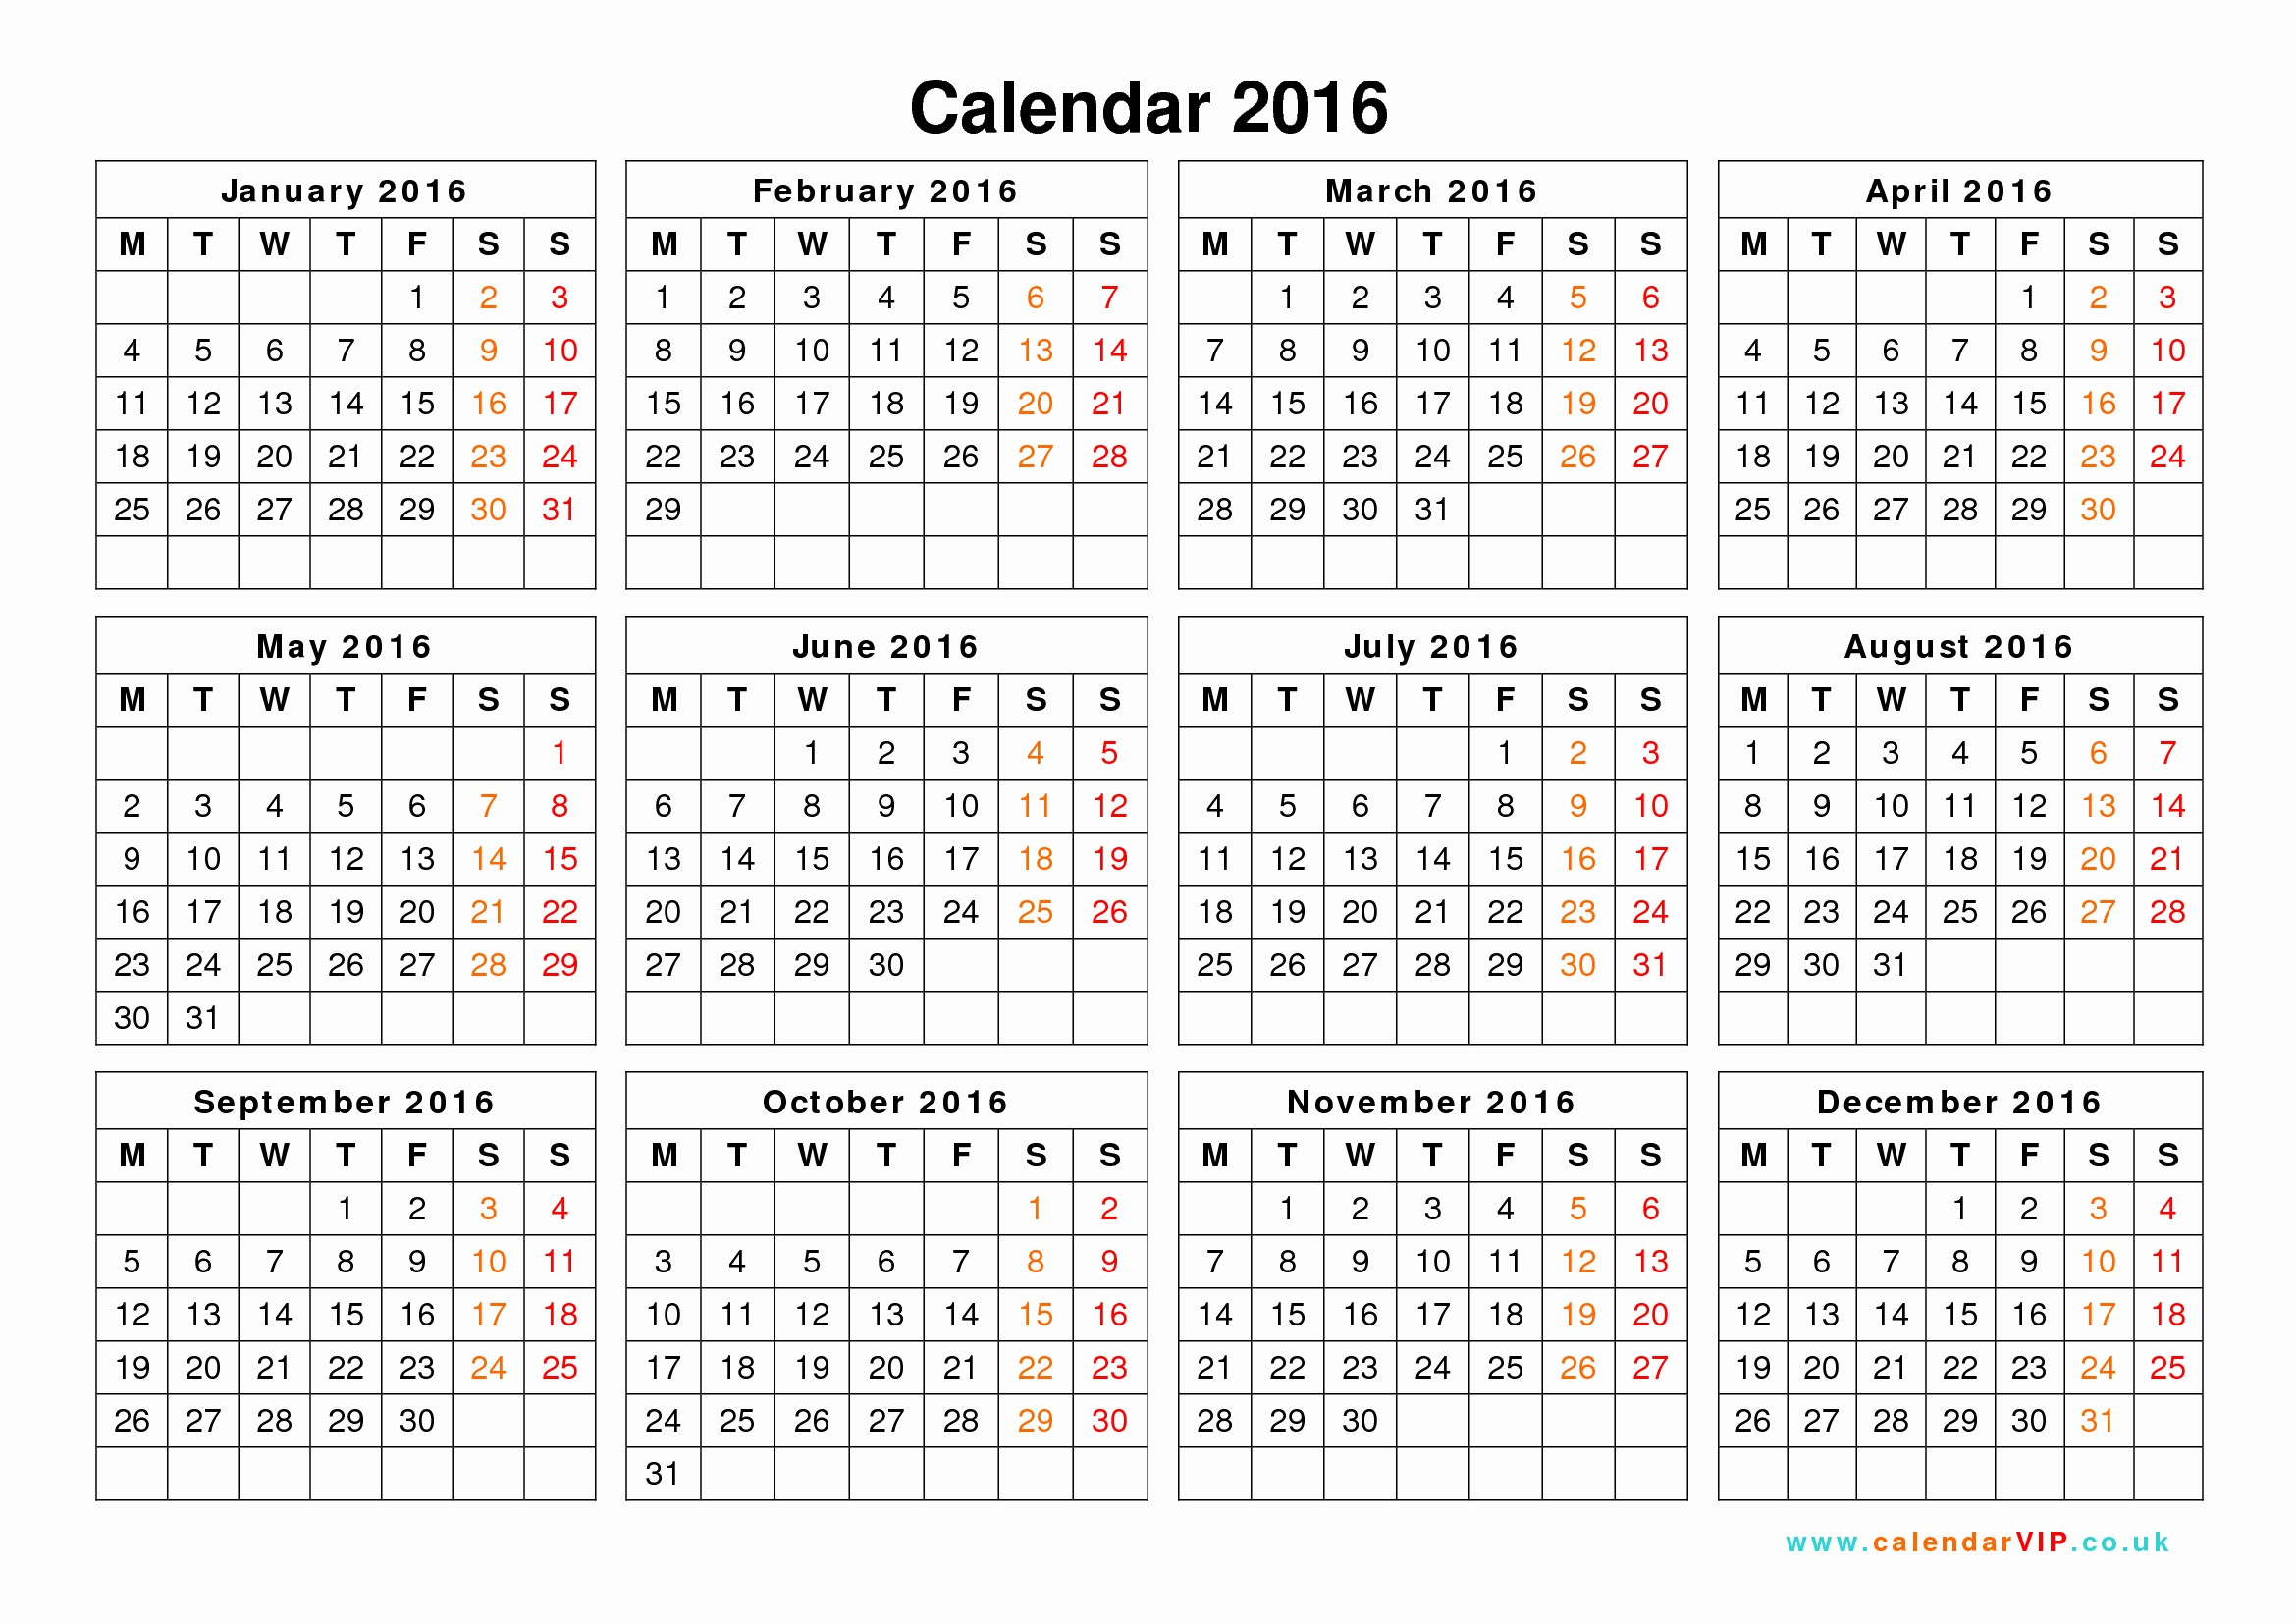 Free Printable Calendar 2016 Templates Unique 2016 Calendar Templates – 2017 Printable Calendar